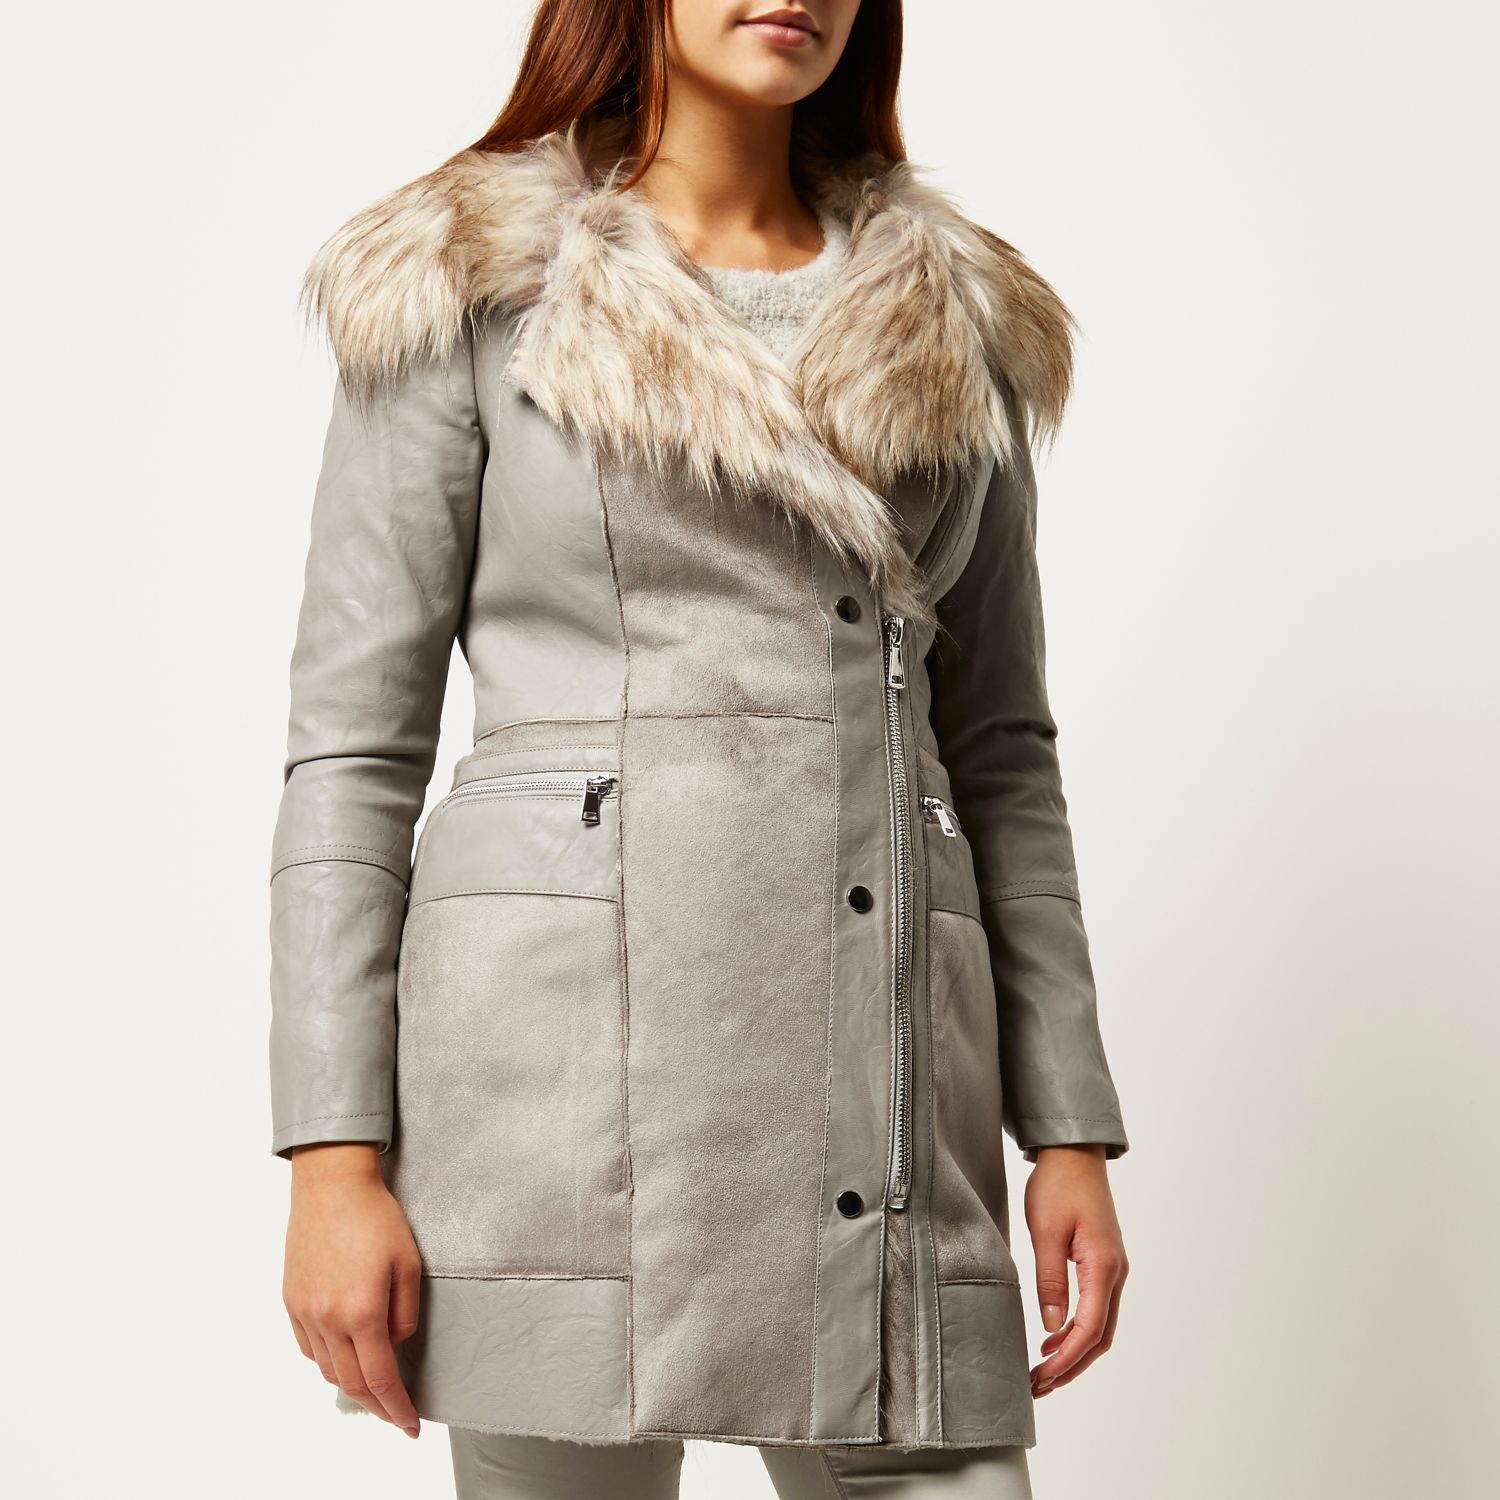 08e0d0b93eab Lyst - River Island Grey Leather-look And Faux Suede .